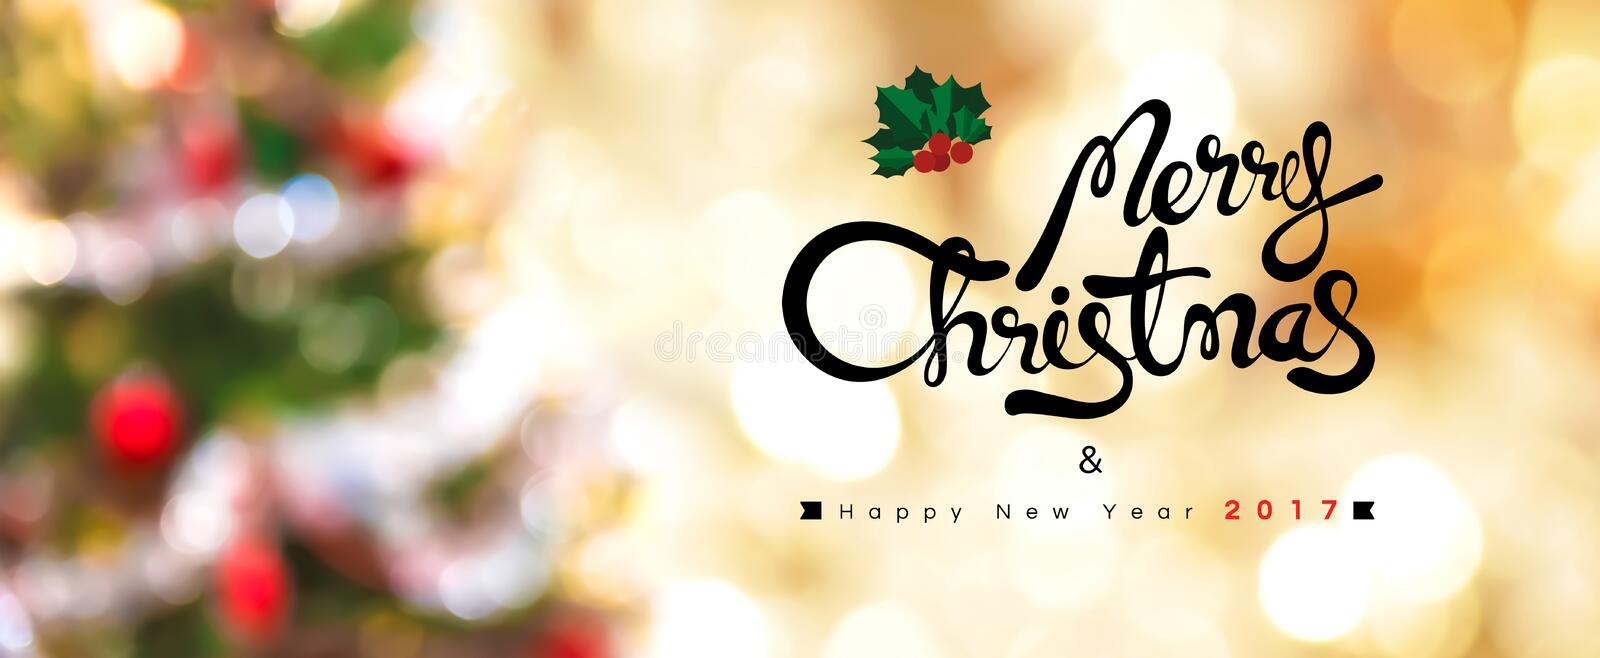 Merry Christmas and Happy New Year 2017 stock photo